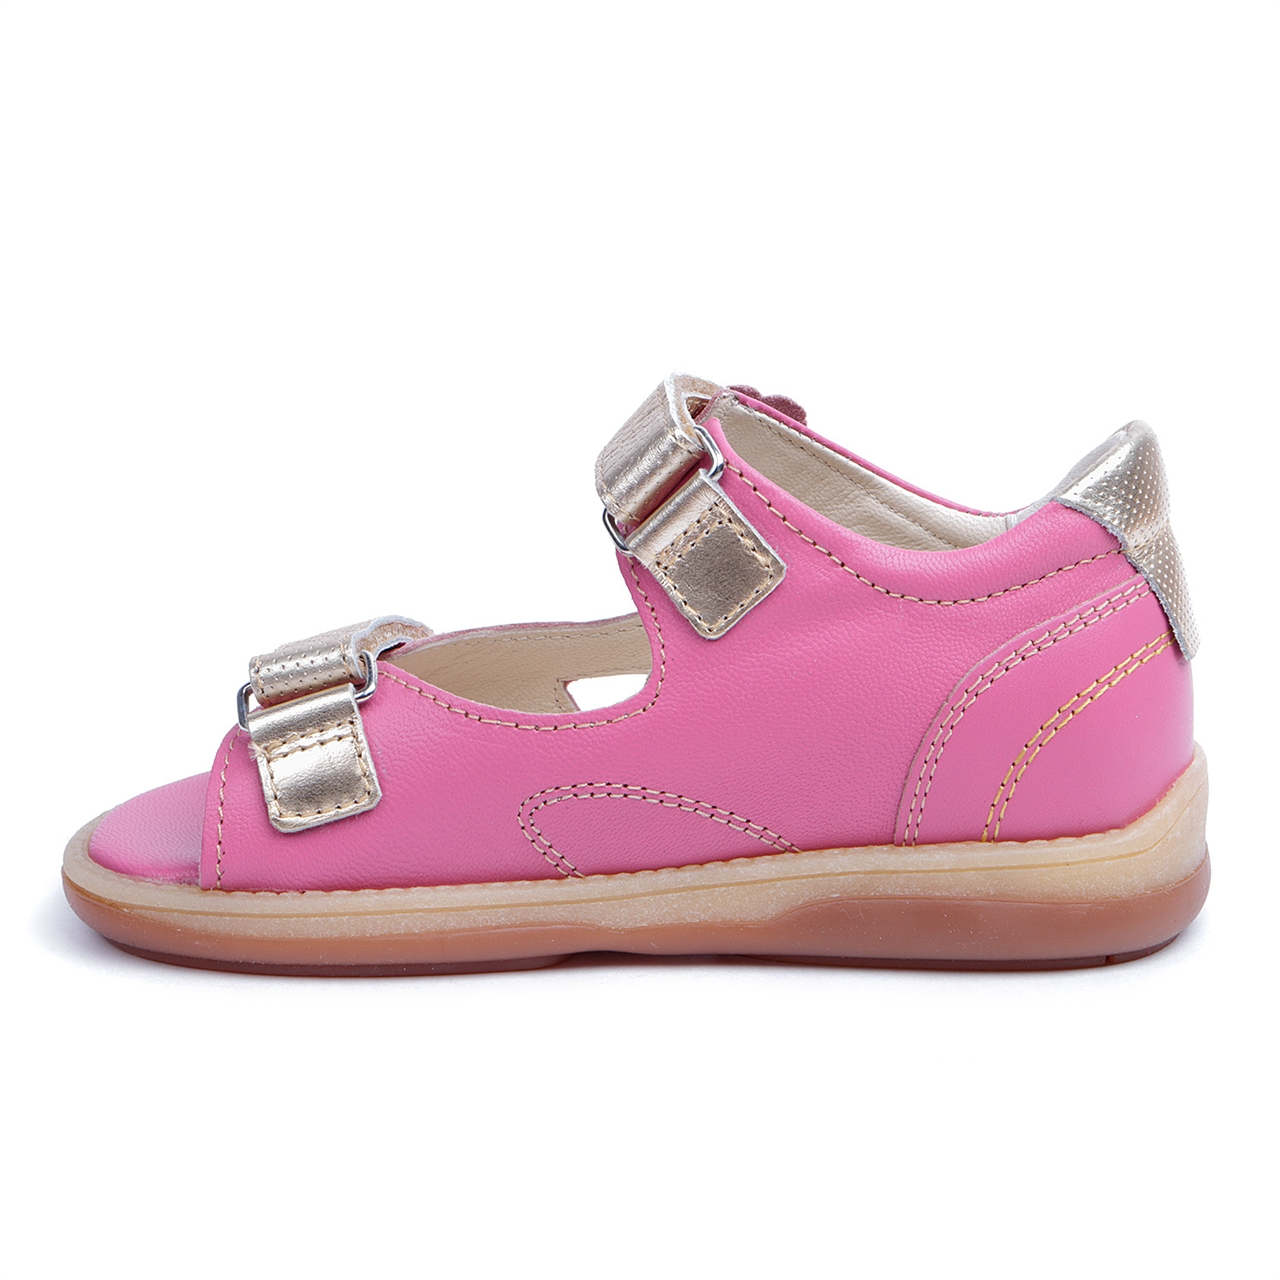 Kids Shoes Made In Poland